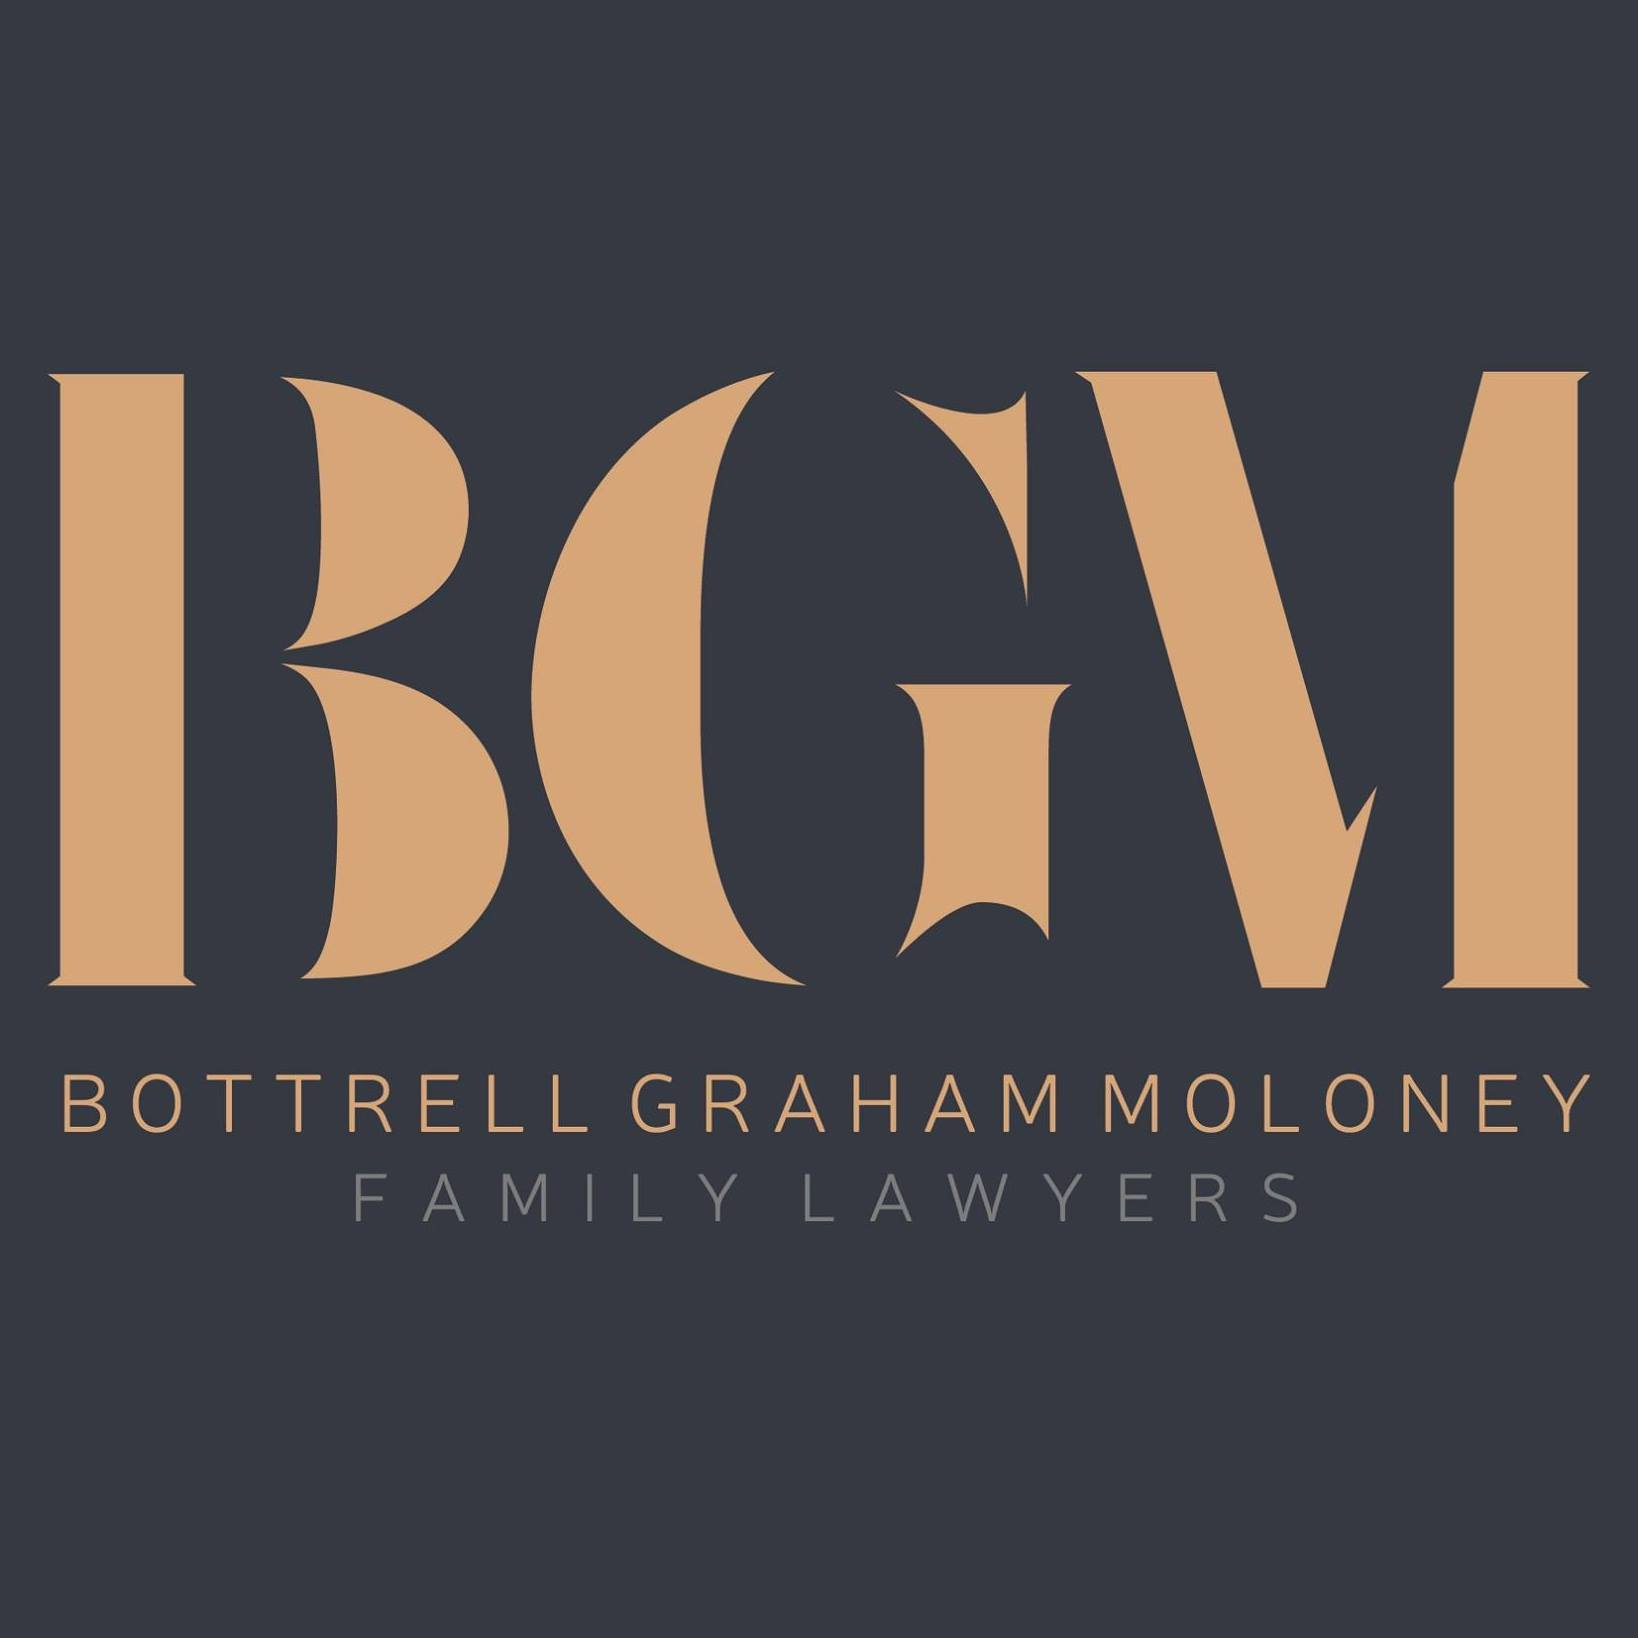 BGM Family Lawyers